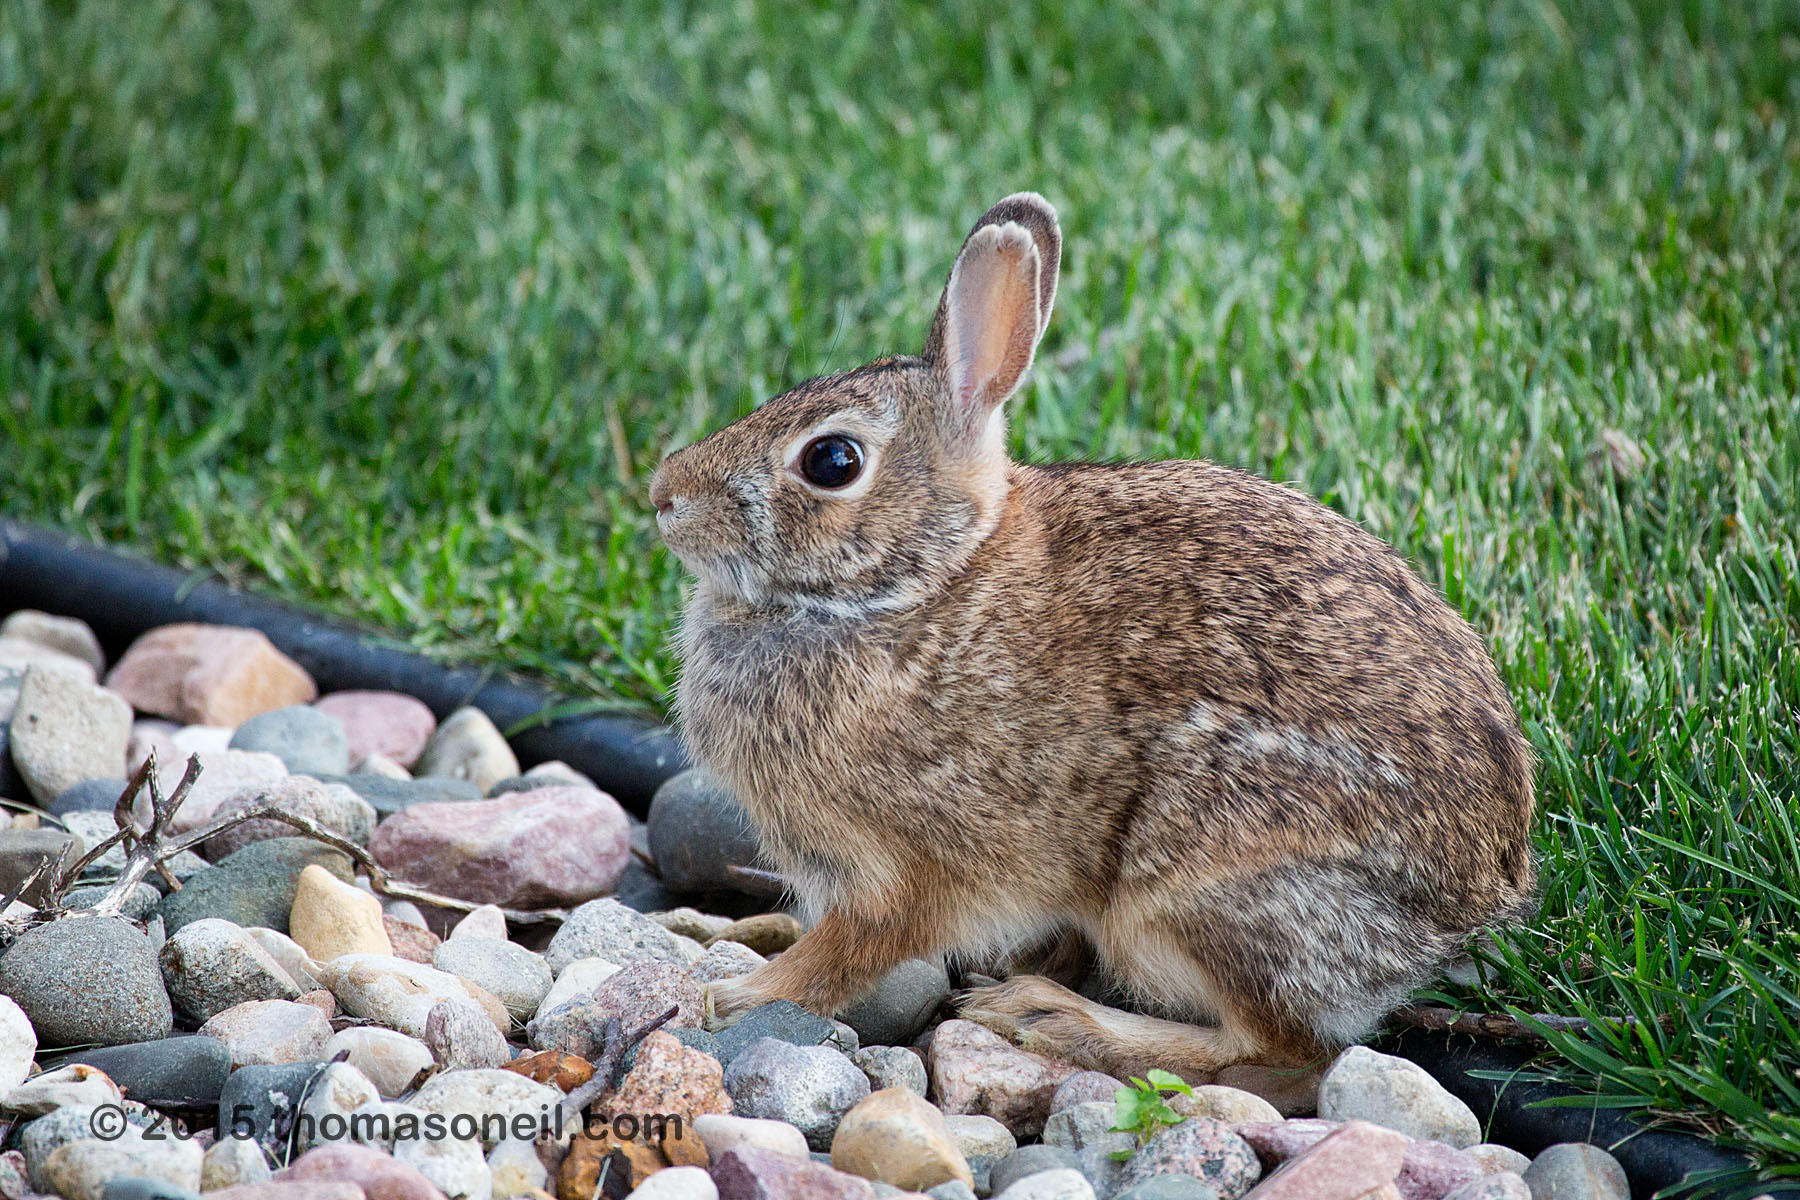 Bunny in my yard, September 2015  Click for next photo.